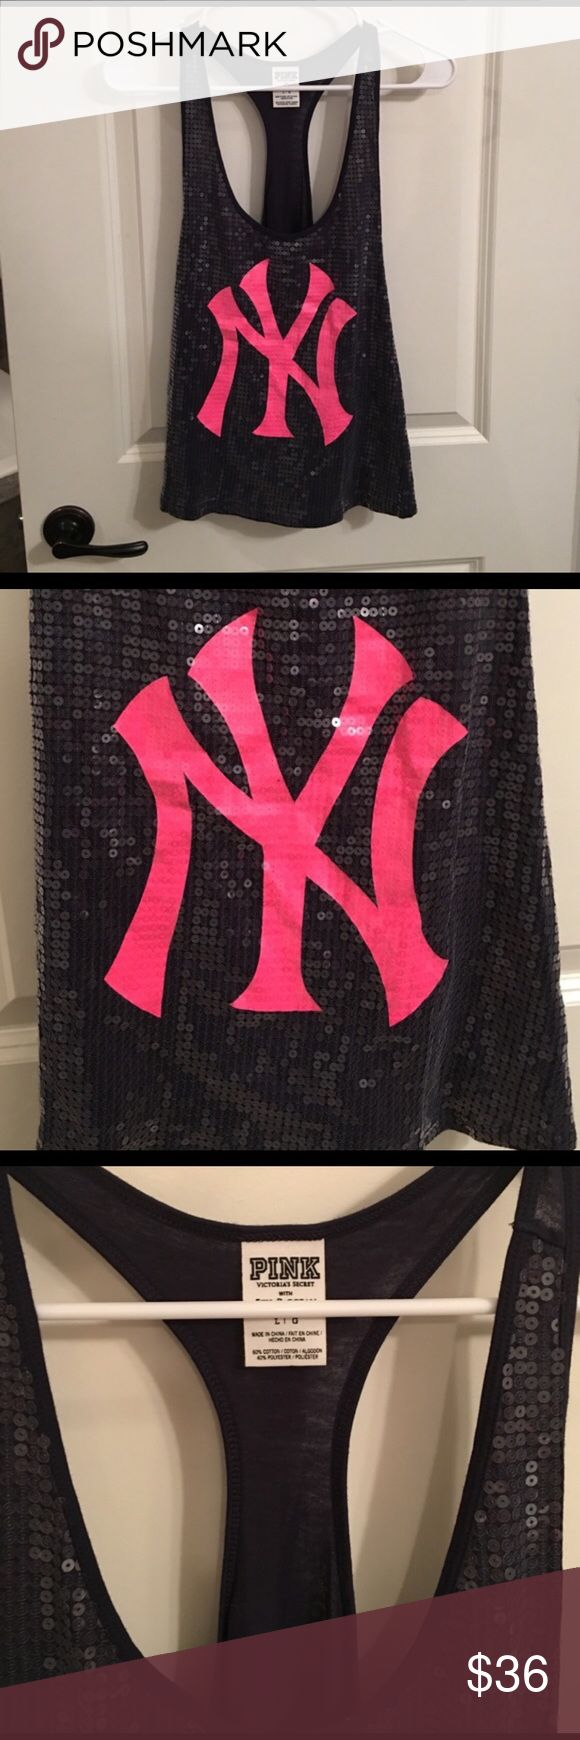 Victoria Secret New York Yankees Tank Sequence razor back tank, runs small, large size, hot pink and navy blue, New York Yankees, never worn PINK Tops Tank Tops